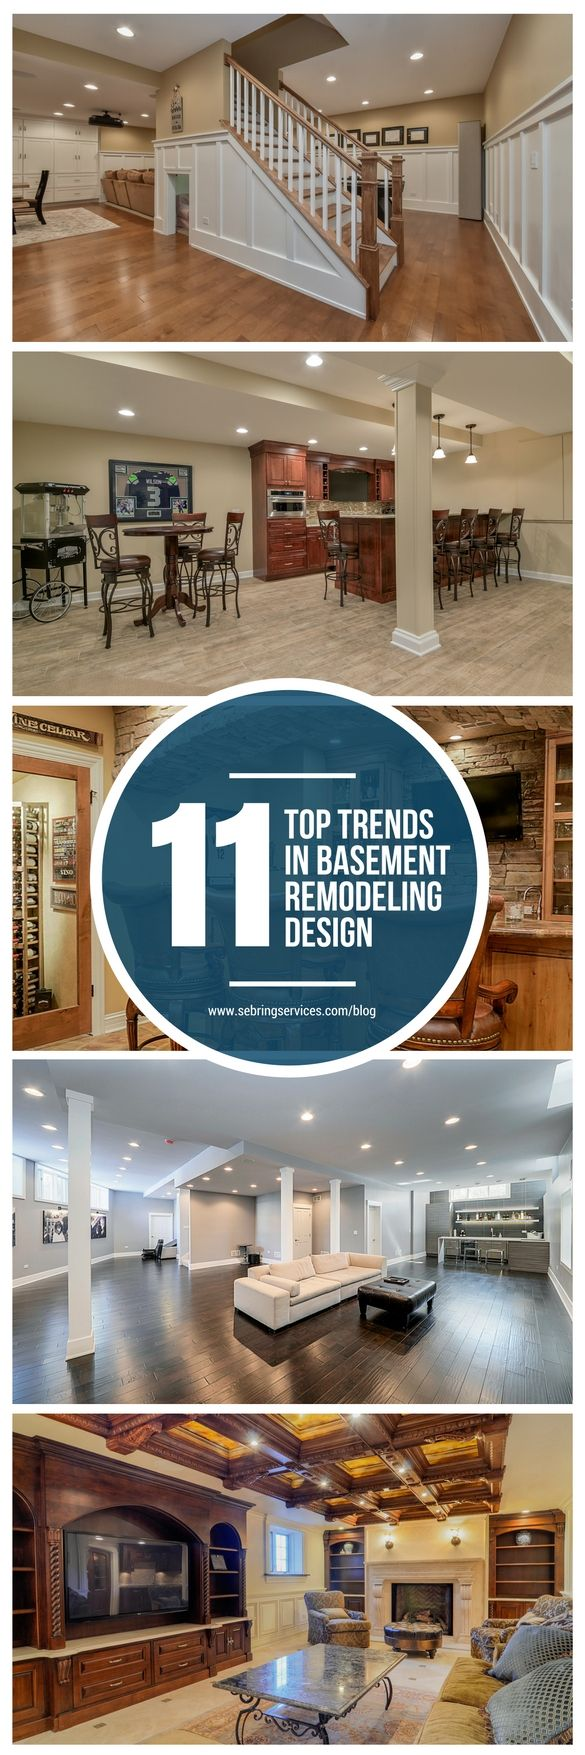 Basement Remodeling Baltimore Model Interior best 25+ basement remodeling ideas on pinterest | basement